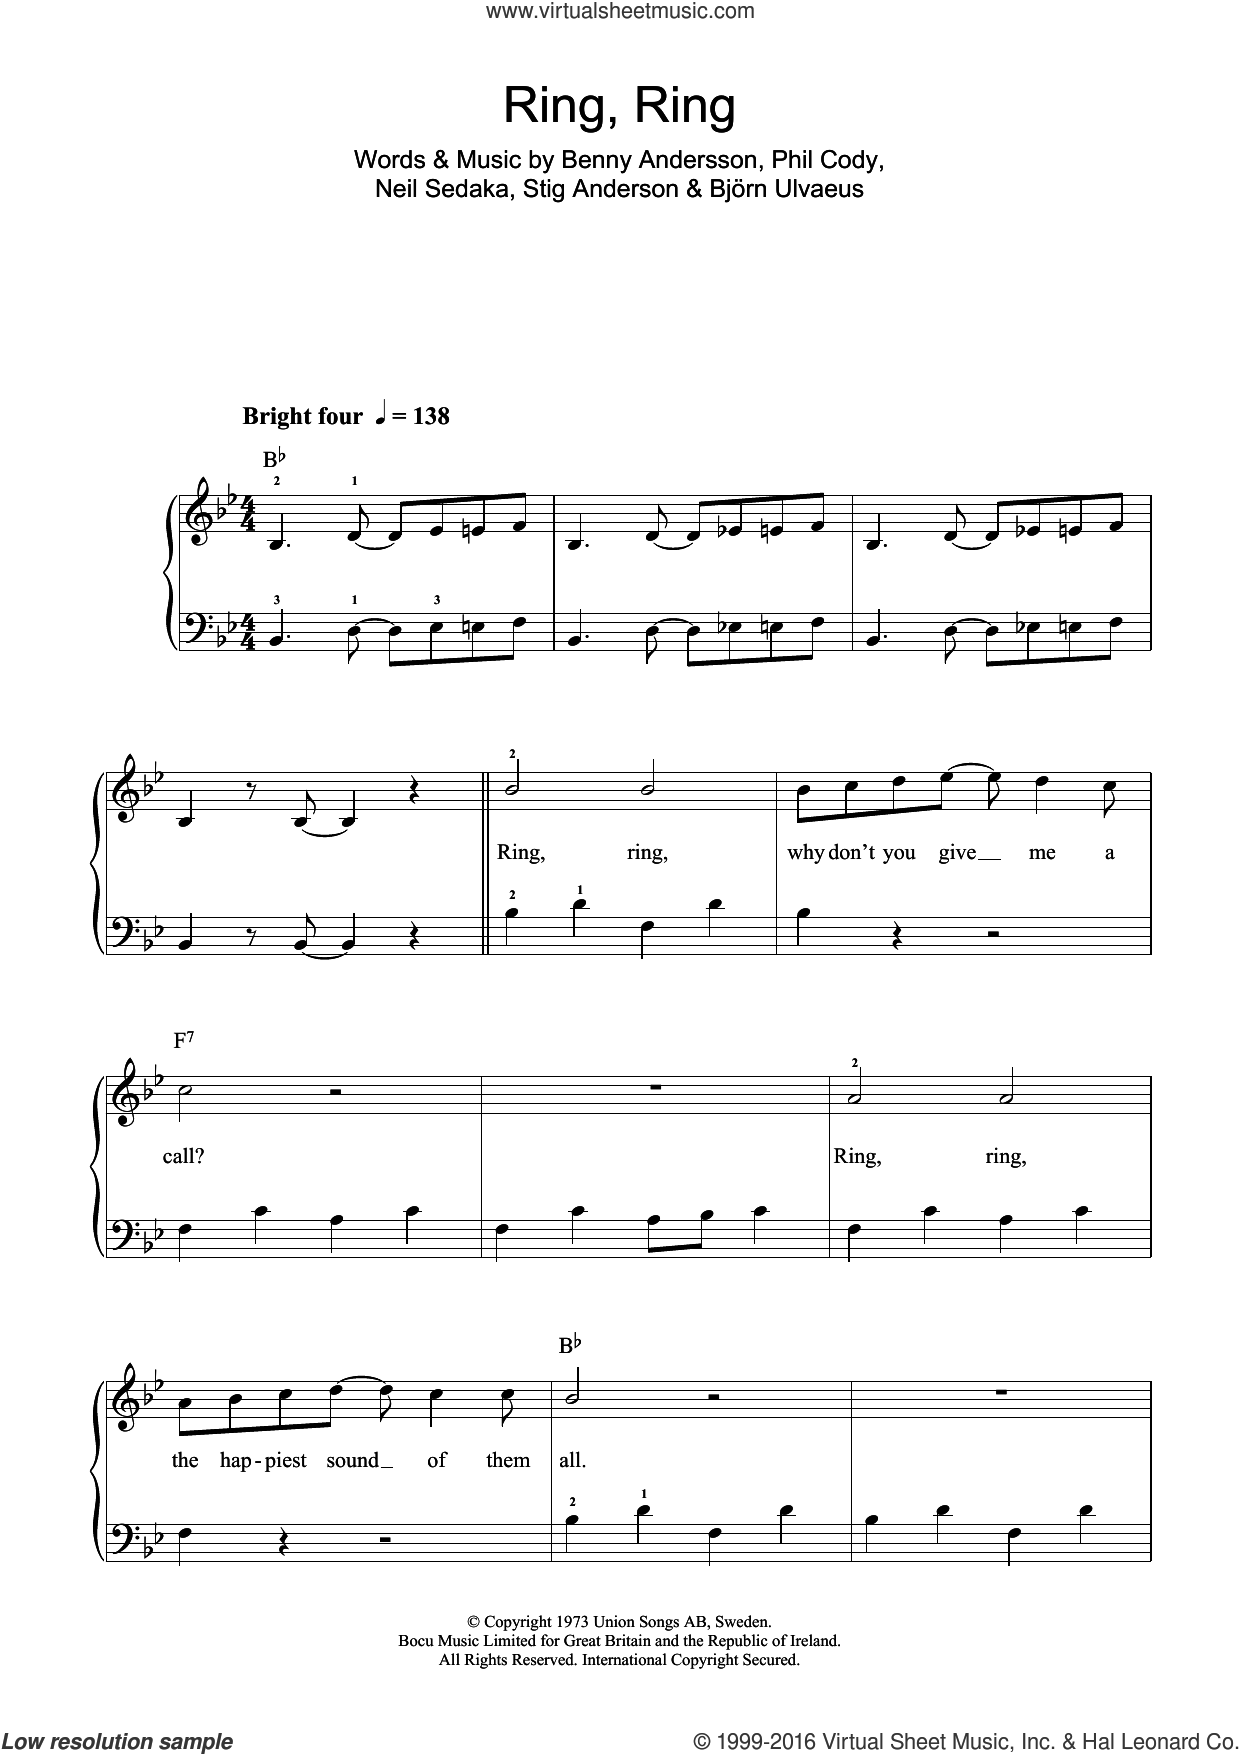 Ring, Ring sheet music for piano solo (beginners) by Stig Anderson, ABBA, Benny Andersson, Bjorn Ulvaeus, Neil Sedaka and Phil Cody. Score Image Preview.